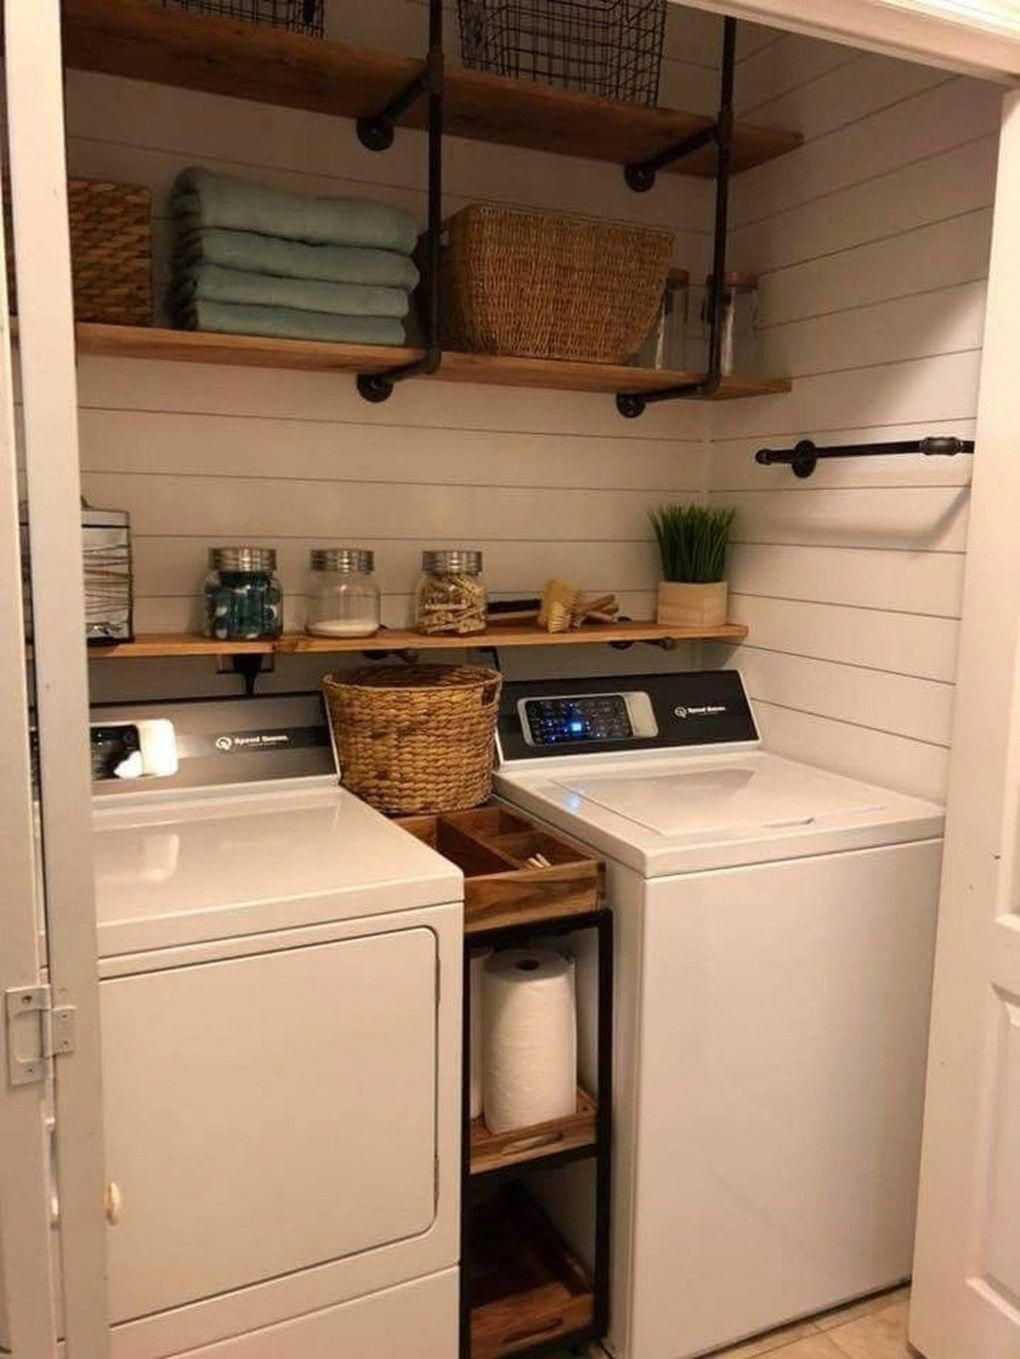 Shiplap Idea For Behind Washer And Dryer With More Industrial Shelving Above Great For Incorpora Laundry Room Remodel Small Laundry Rooms Laundry Room Decor